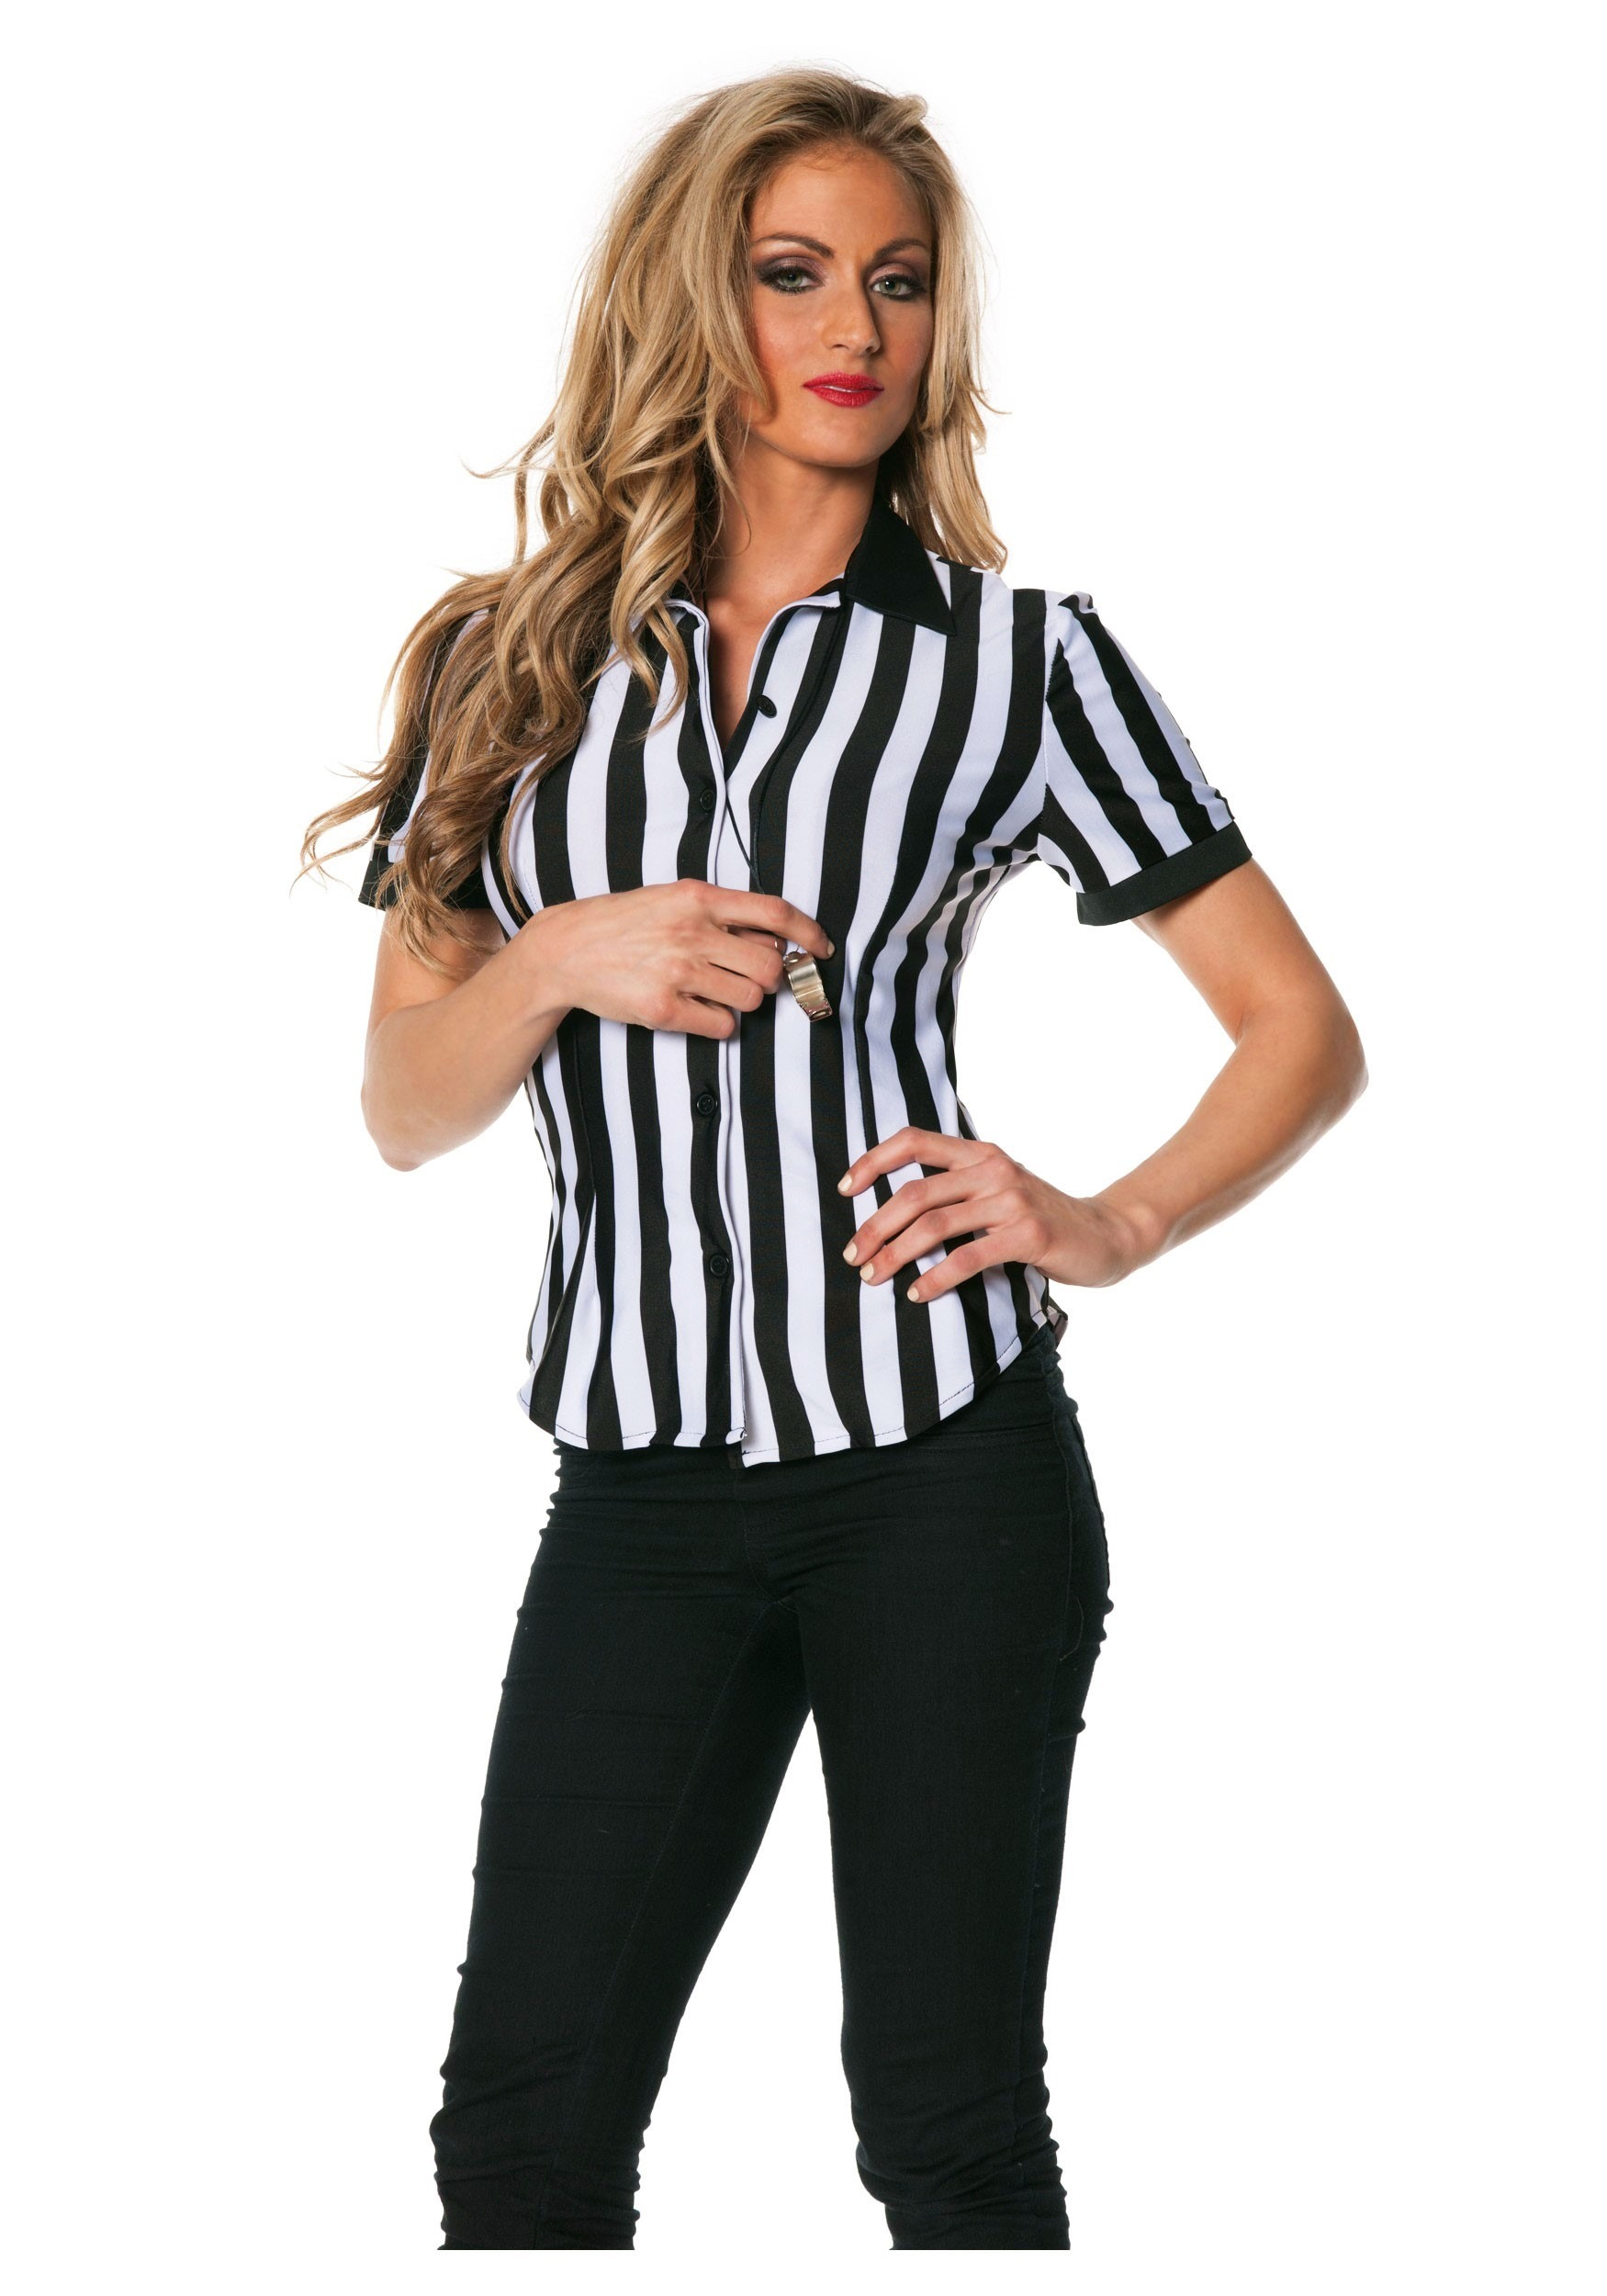 68dd1239d9825 Women s Plus Size Referee Shirt Update Main